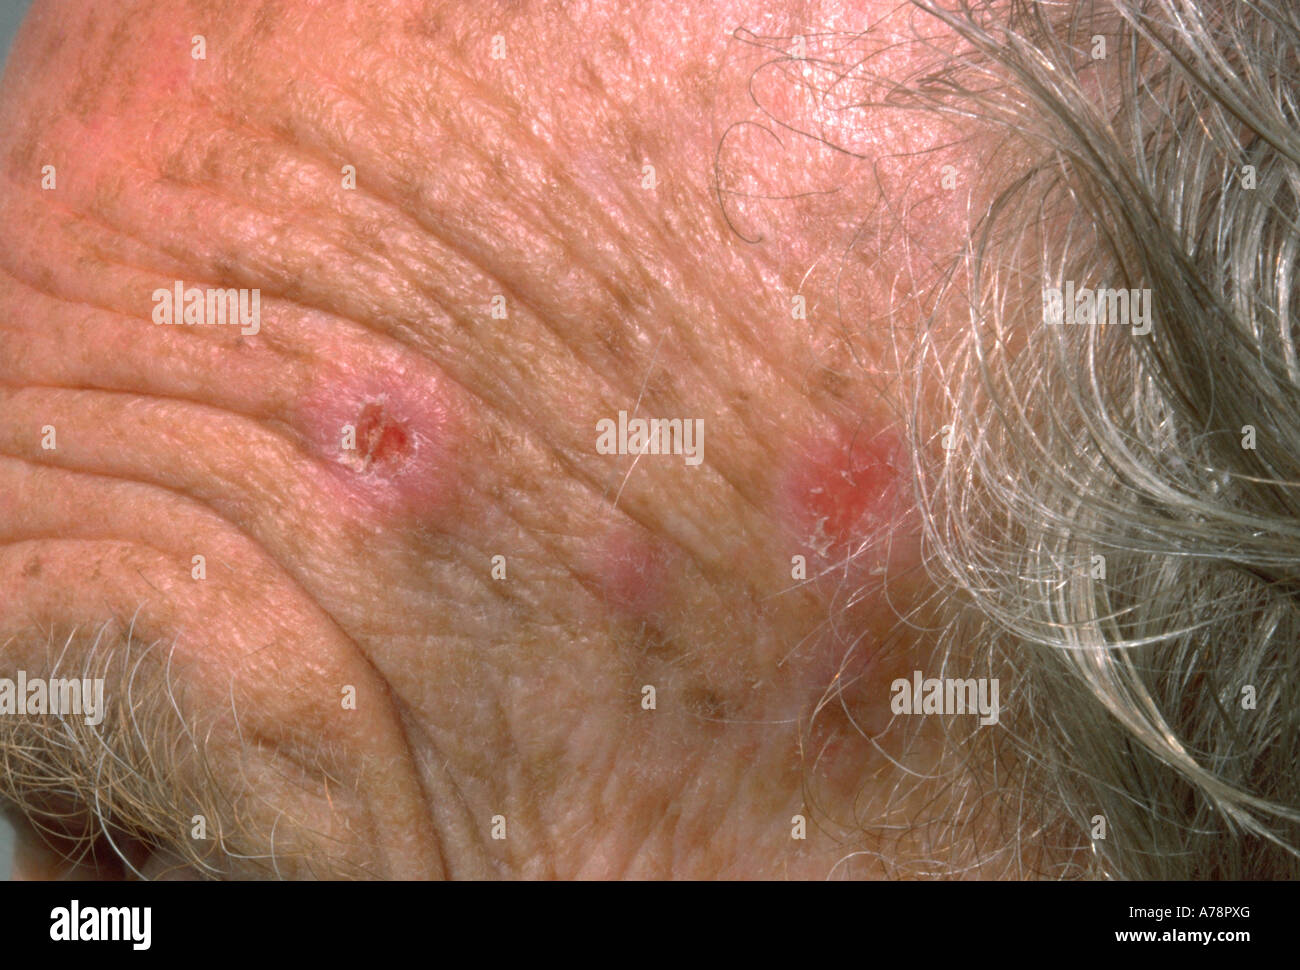 Actinic keratosis Stock Photo: 11761431 - Alamy